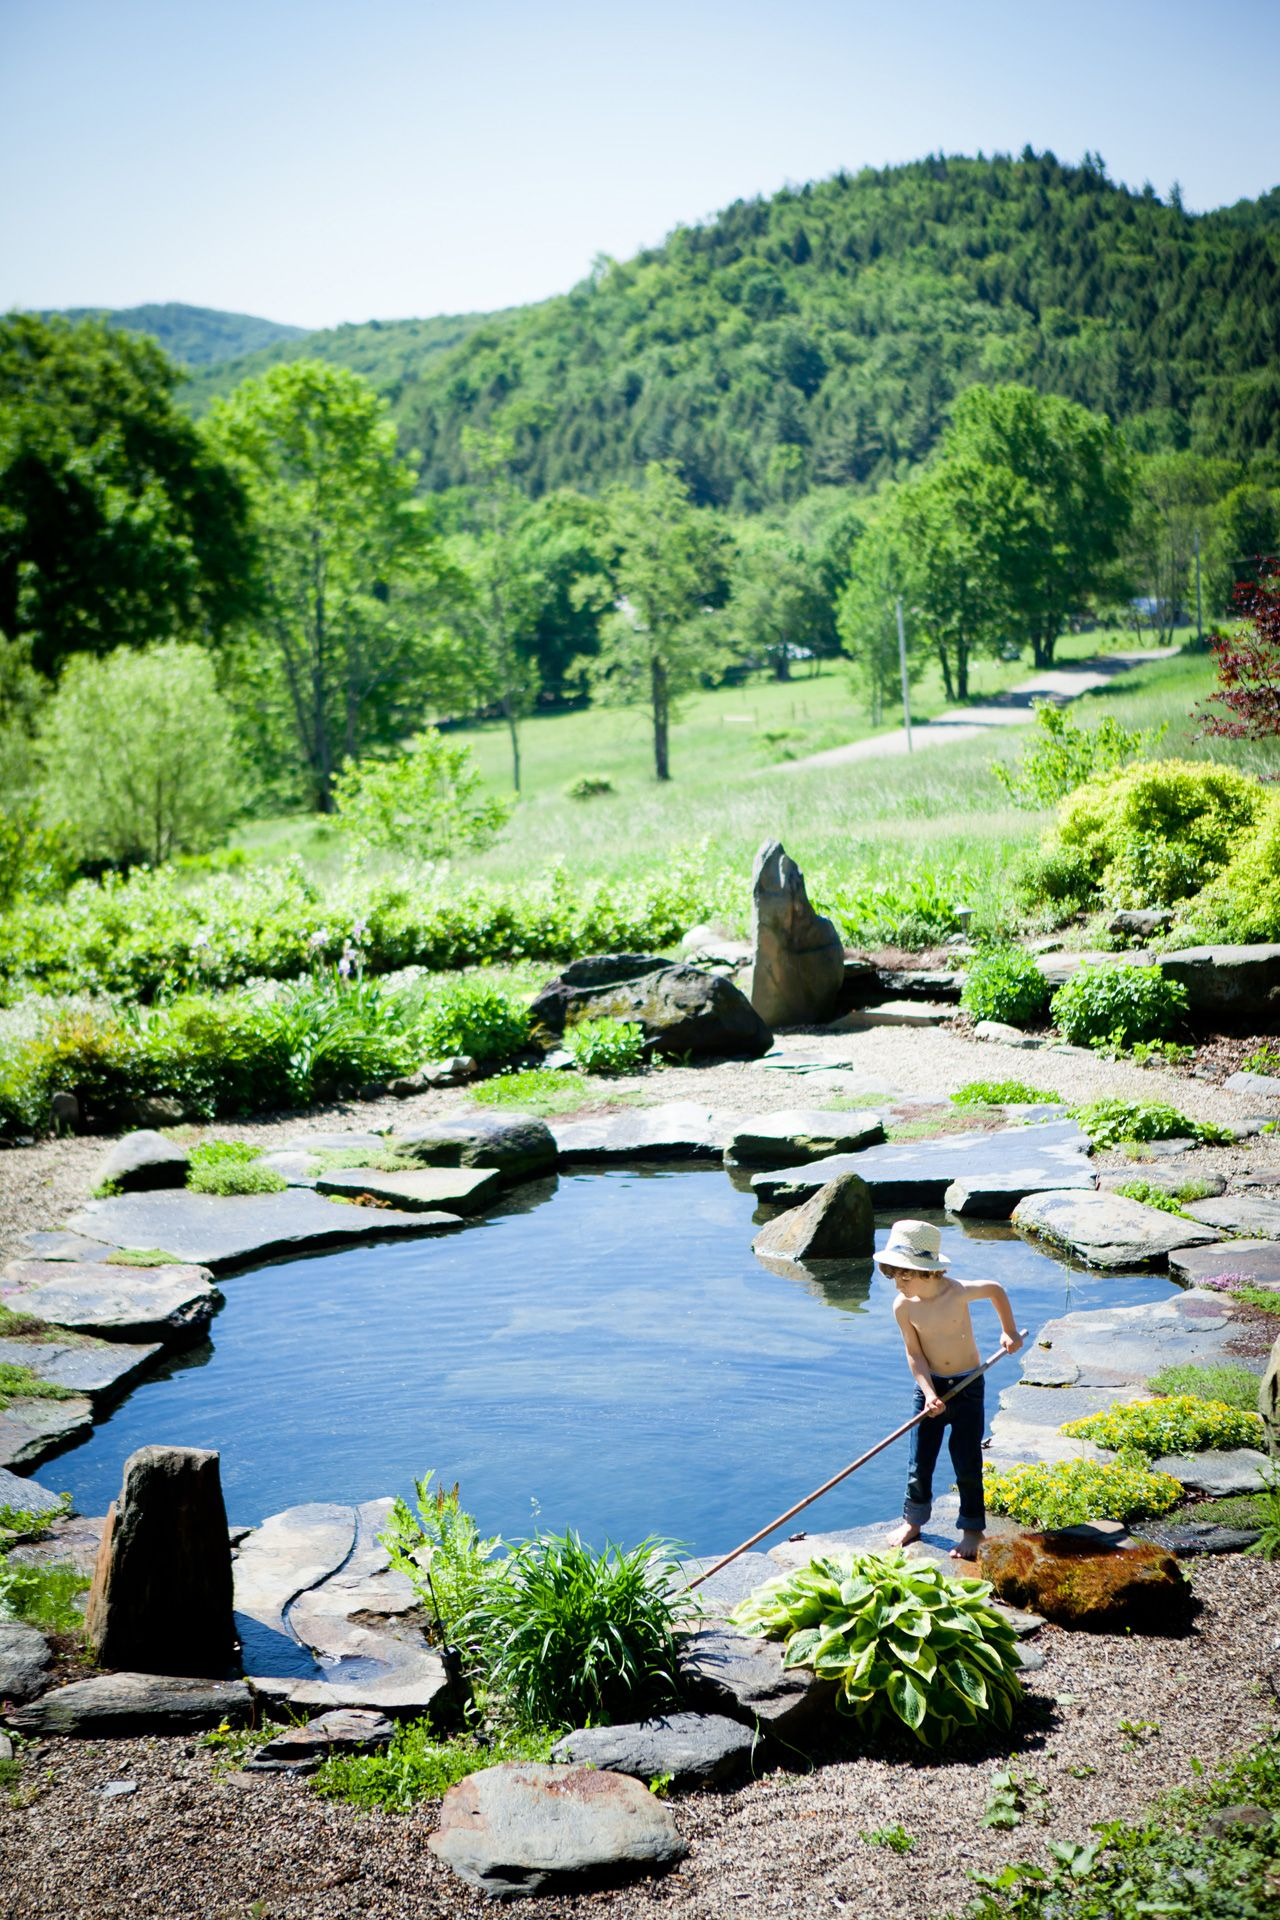 Small Natural Pool Designs best 20 natural backyard pools ideas on pinterest natural pools swimming ponds and natural swimming pools 17 Best Images About Swimming Pools On Pinterest Water House The Dreamers And Plants